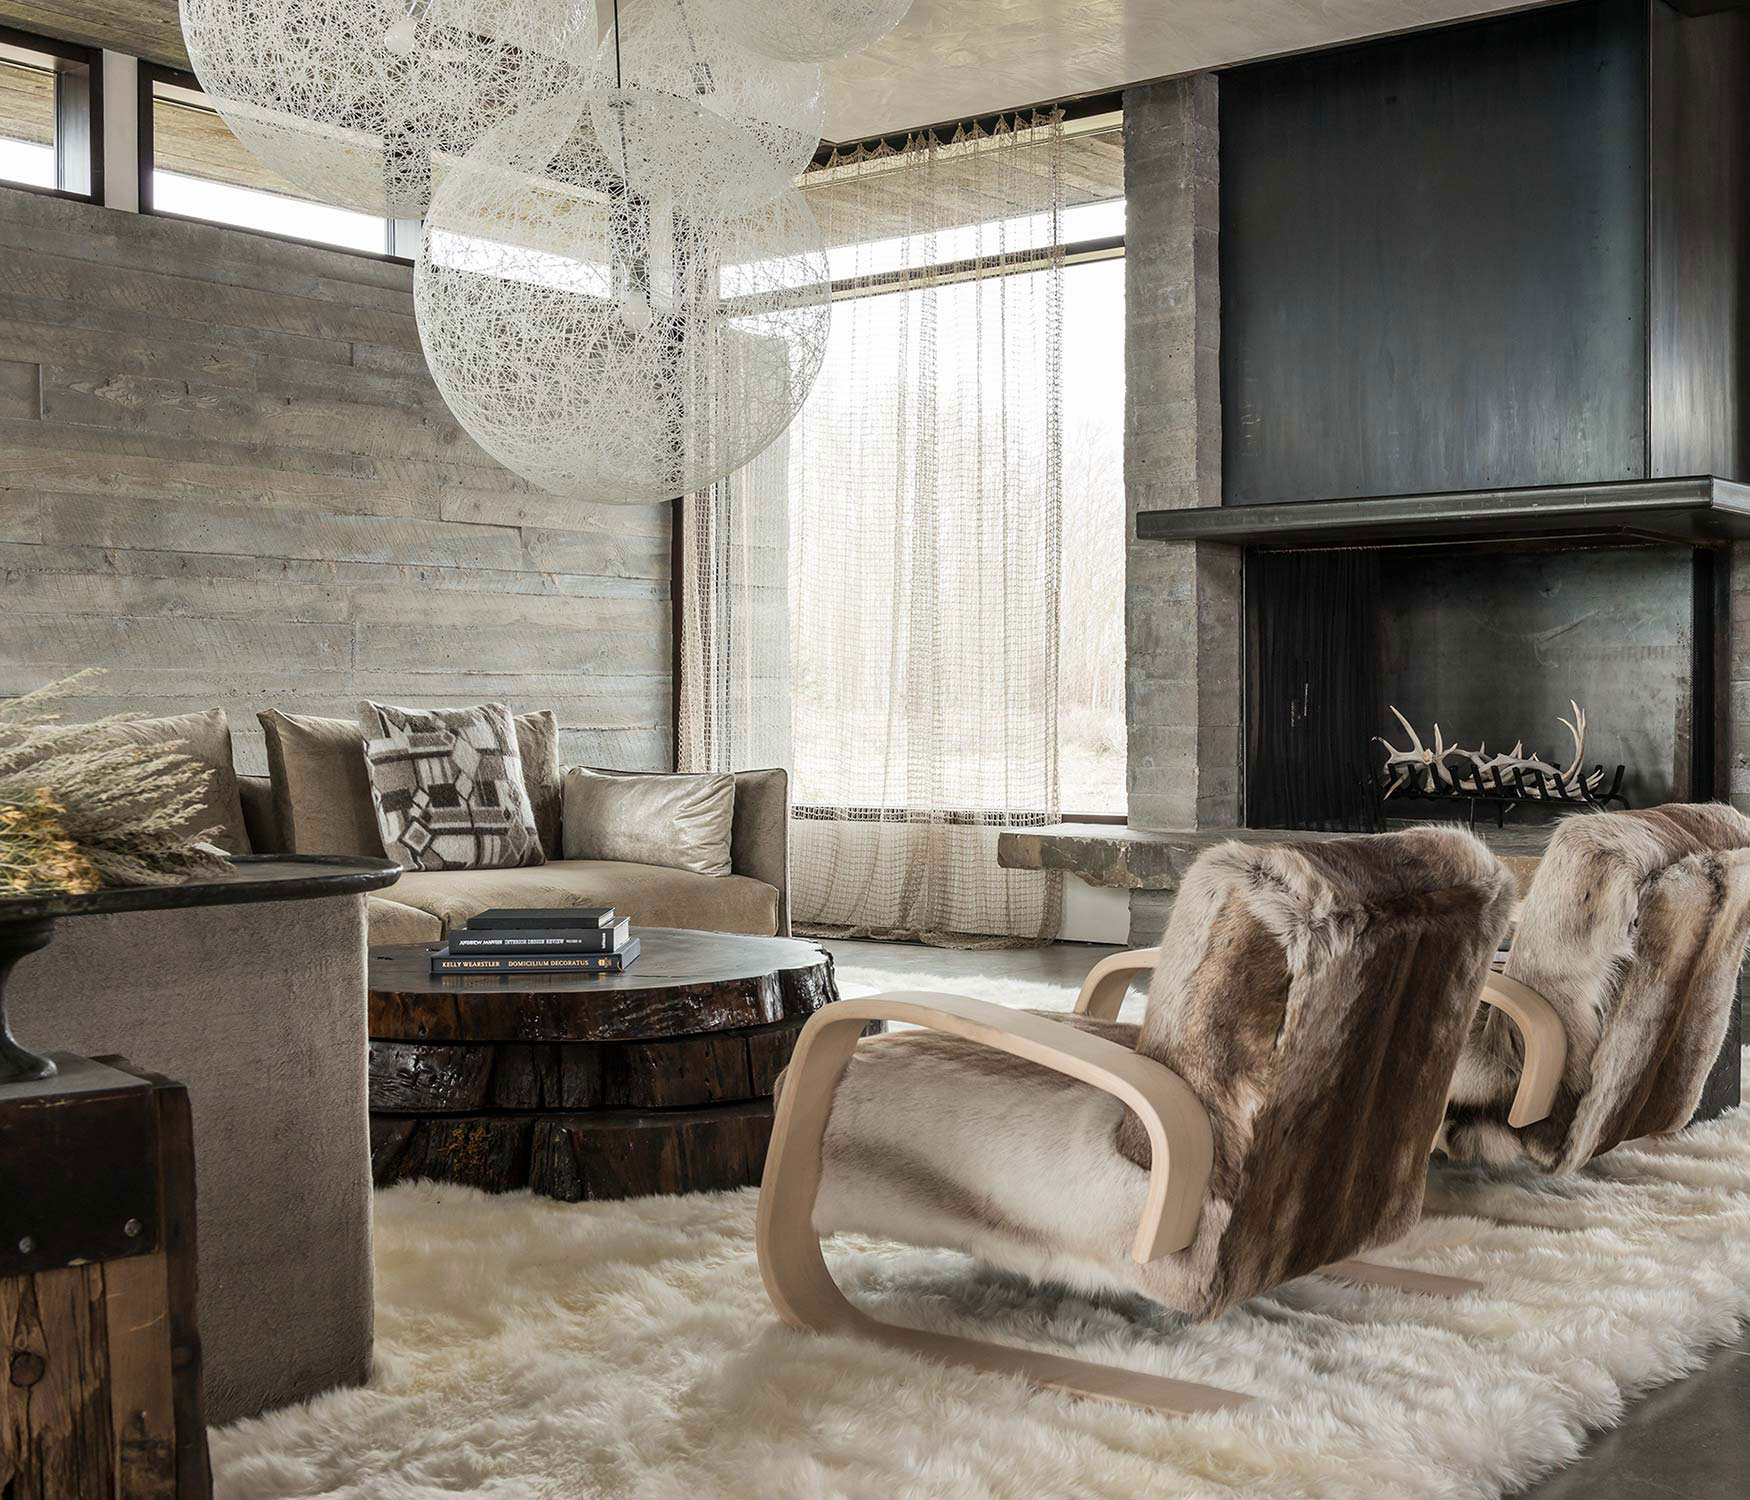 Modern Rustic Interior Design | Pearson Design Group